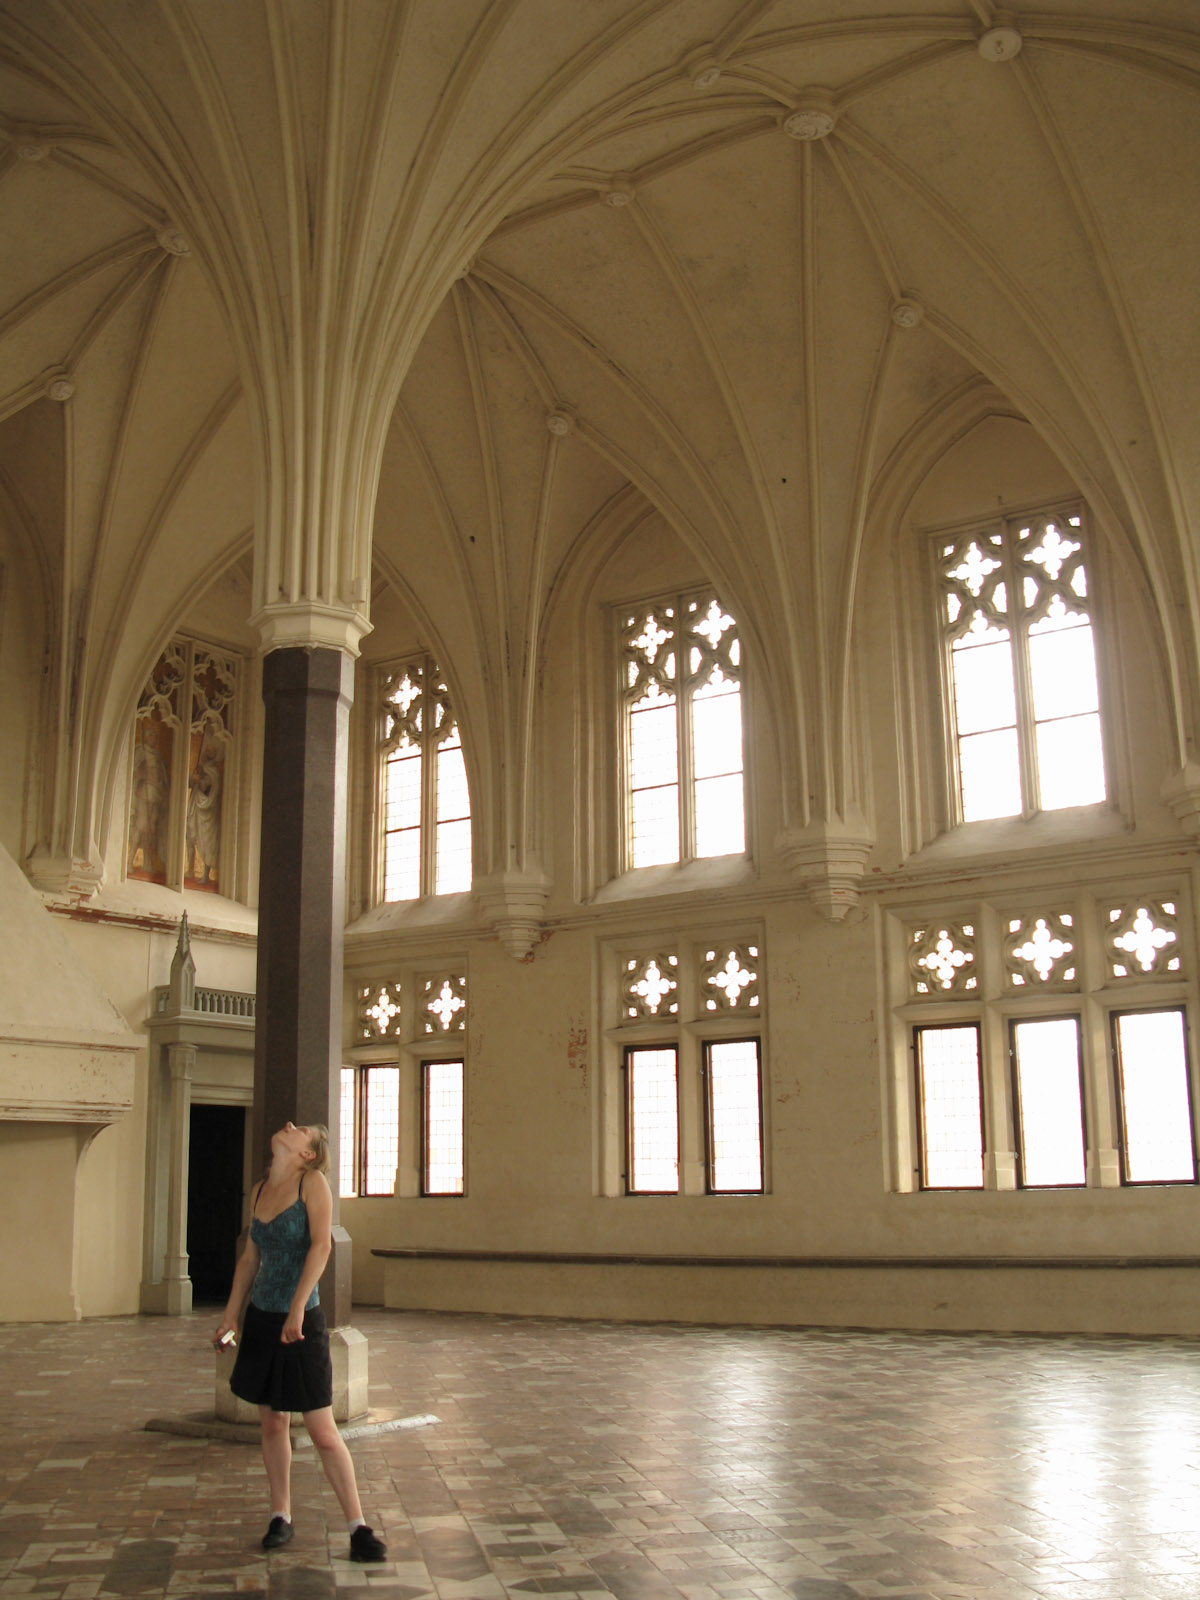 Hanne in the Chapter House of Malbork Teutonic Knights Order Fortress